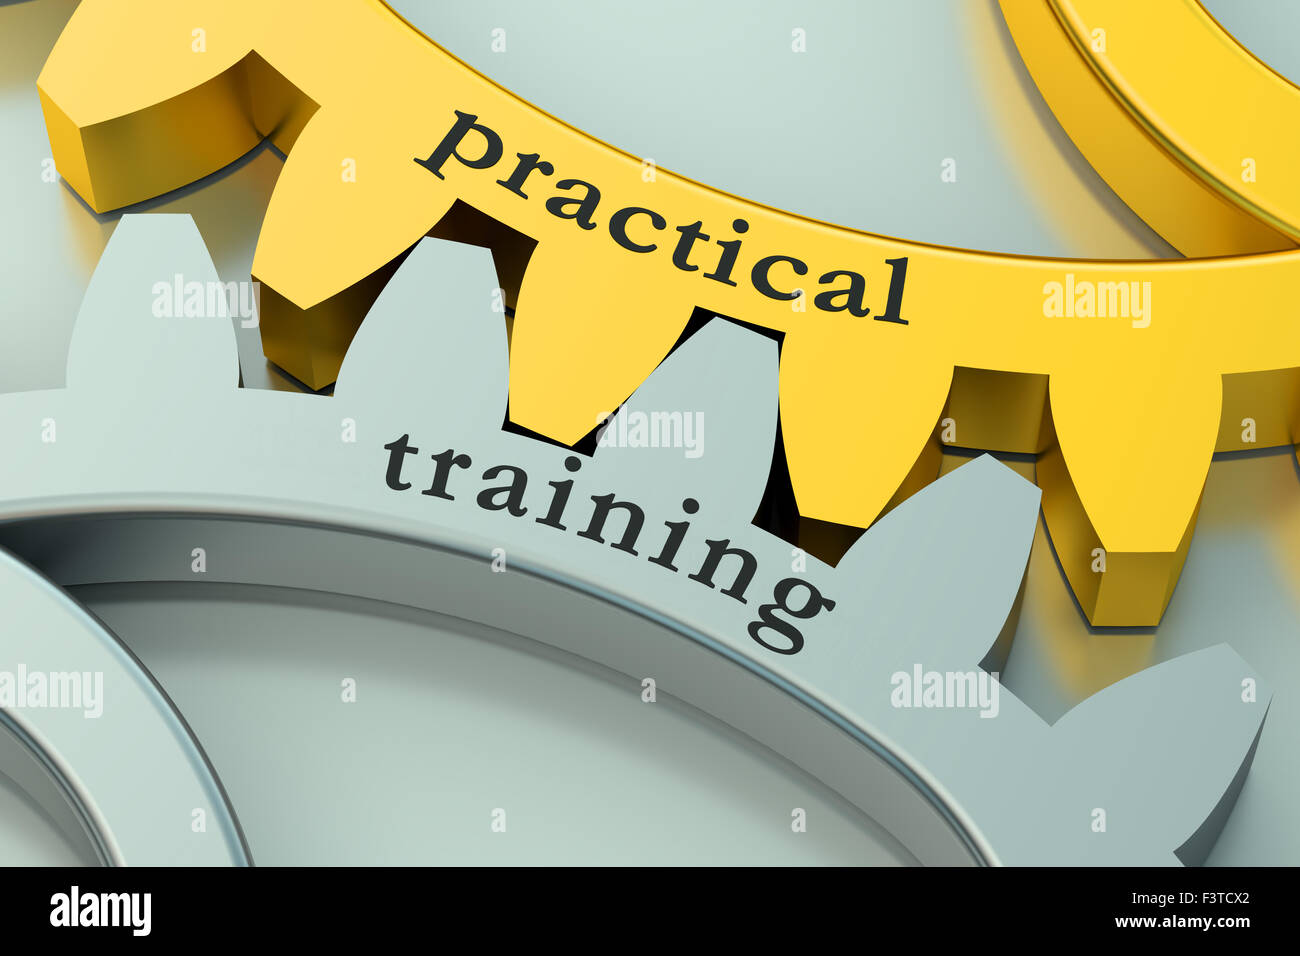 Practical Training concept on the gearwheels - Stock Image